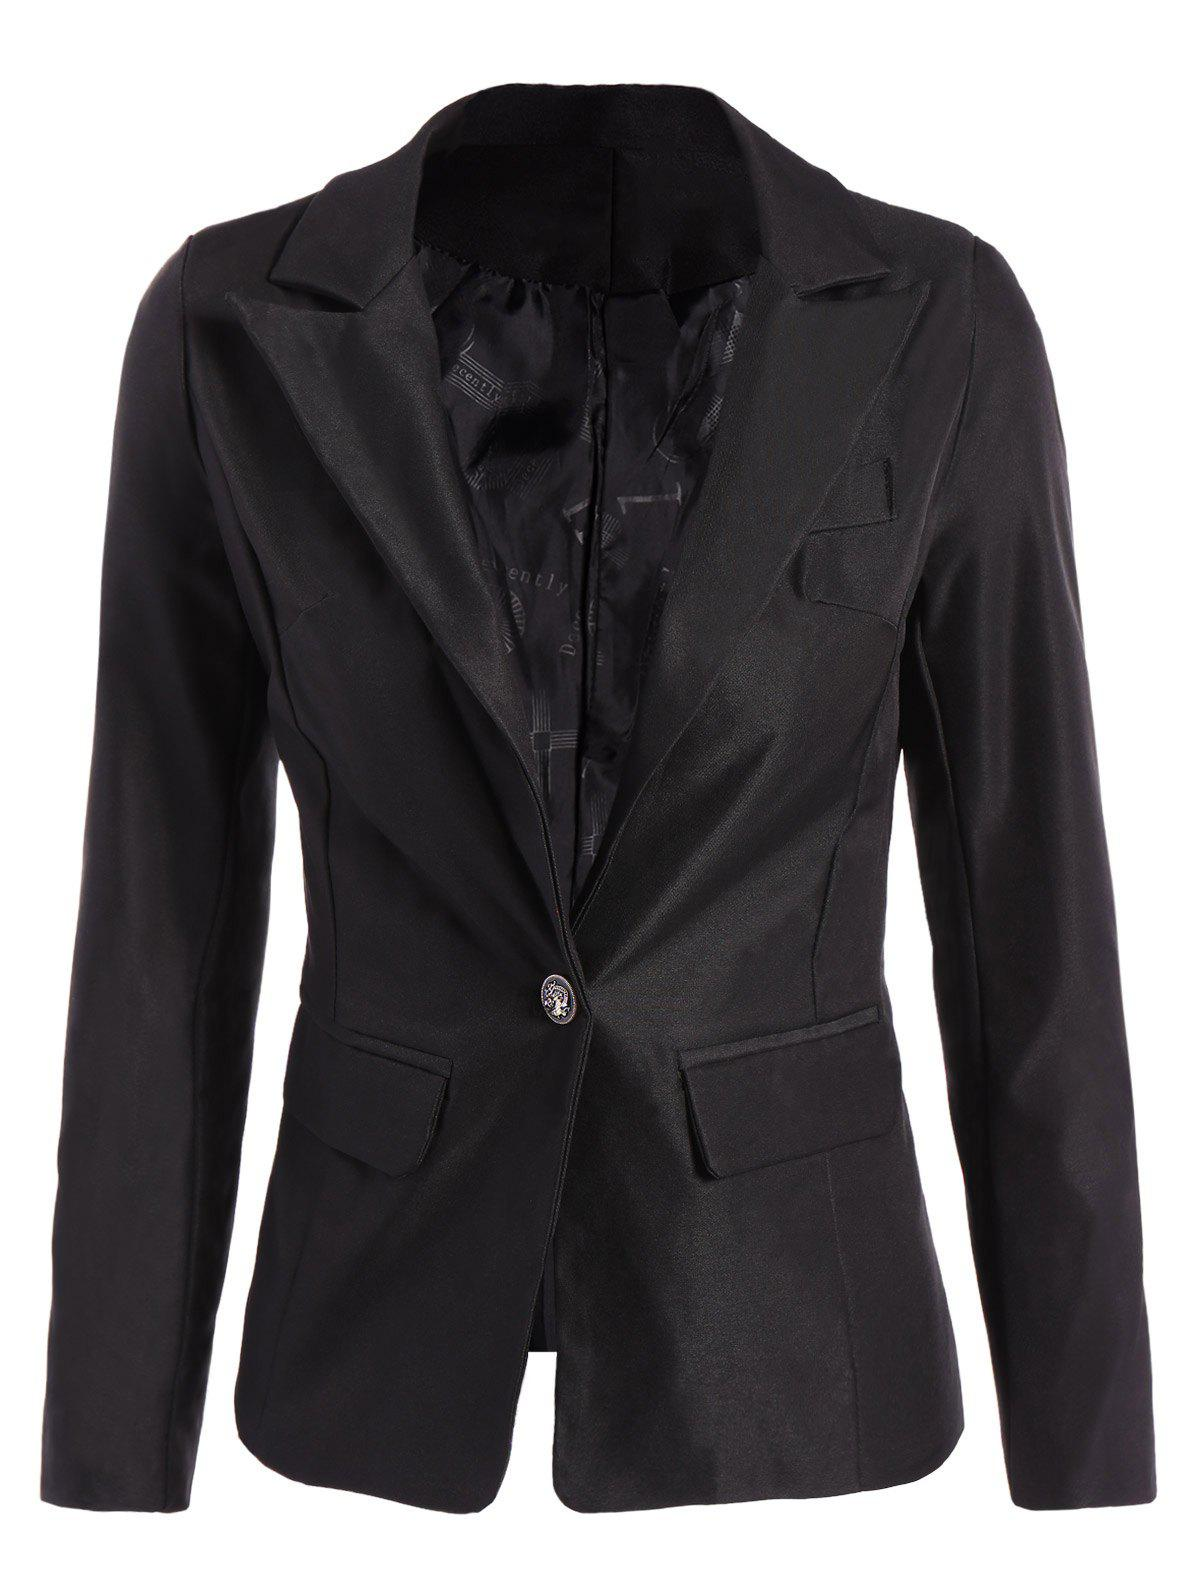 Lined One Button Blazer - BLACK 3XL